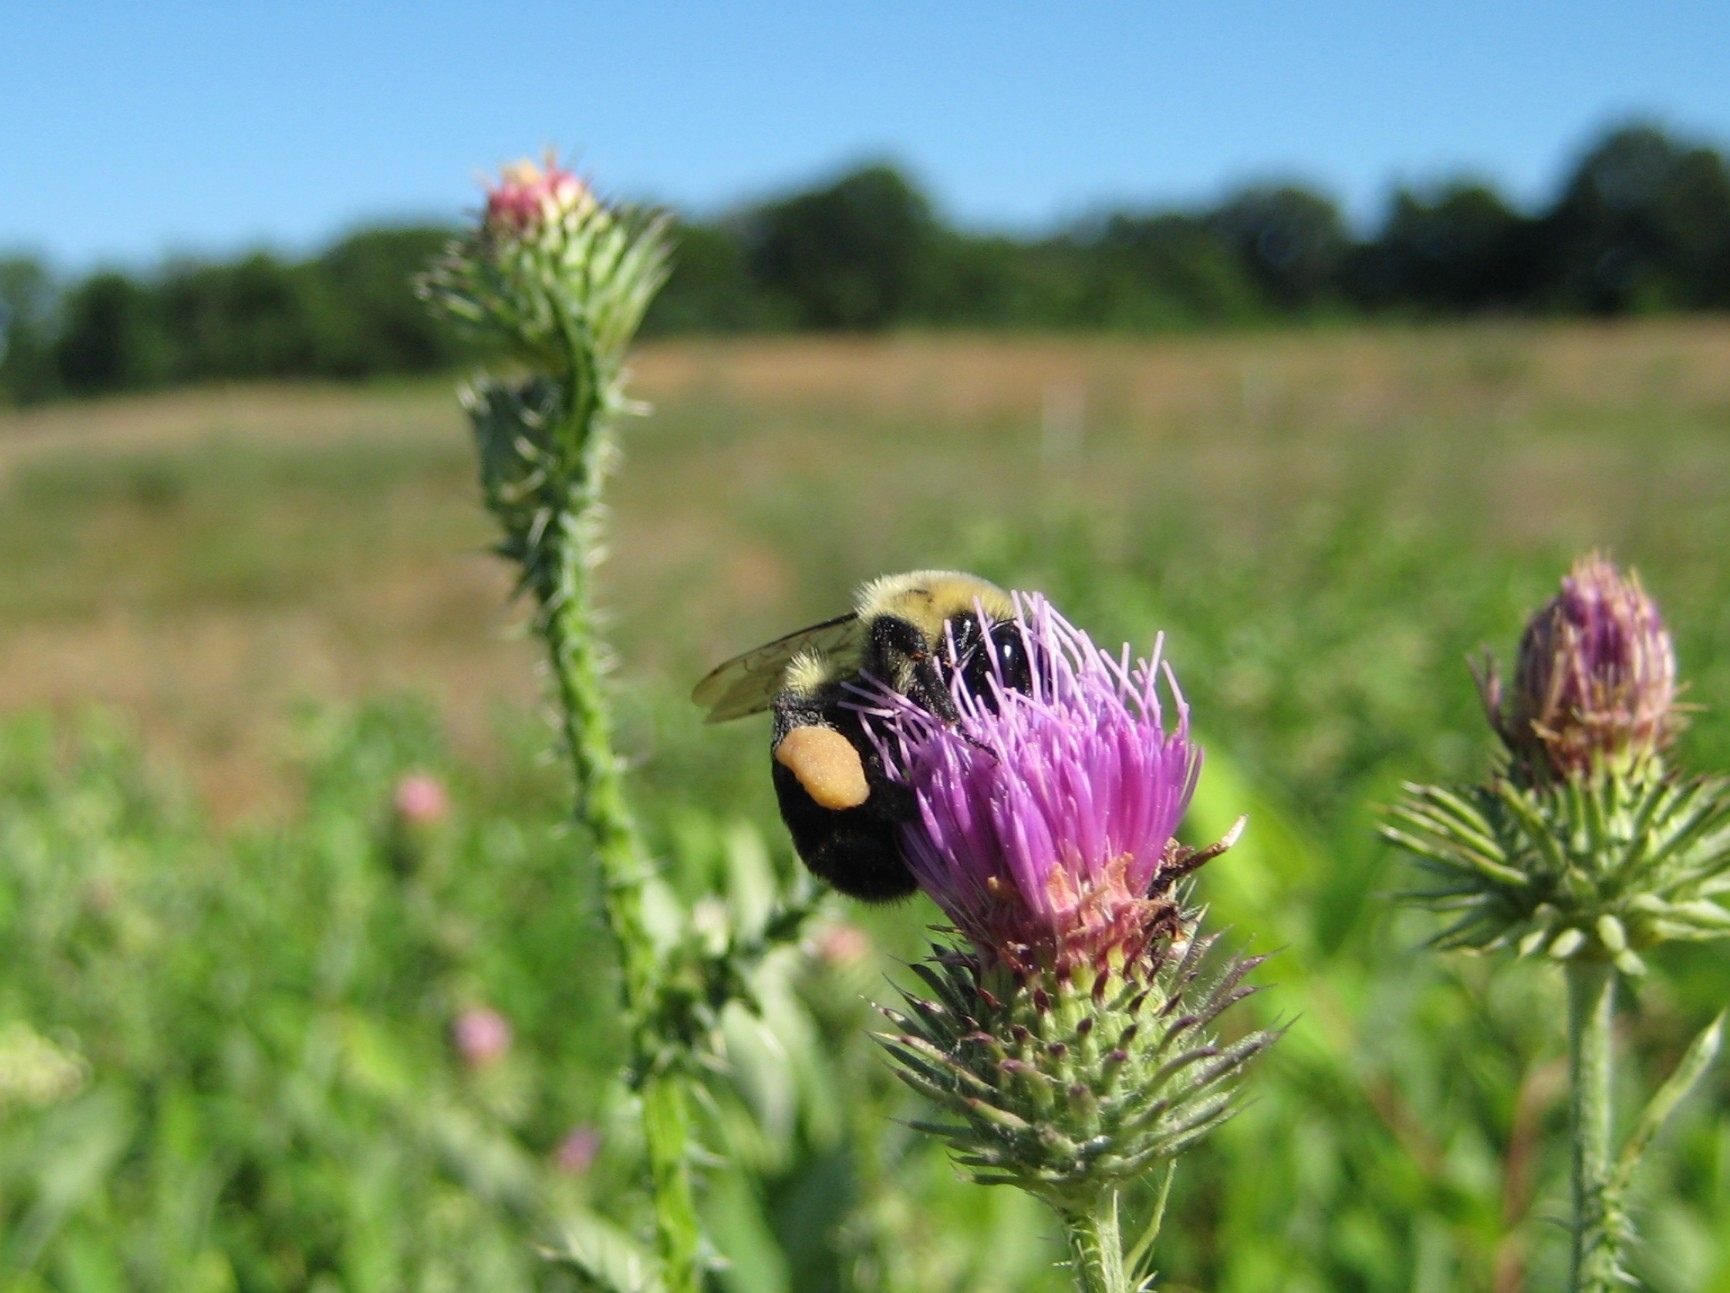 Managing Landscapes for Pollinators